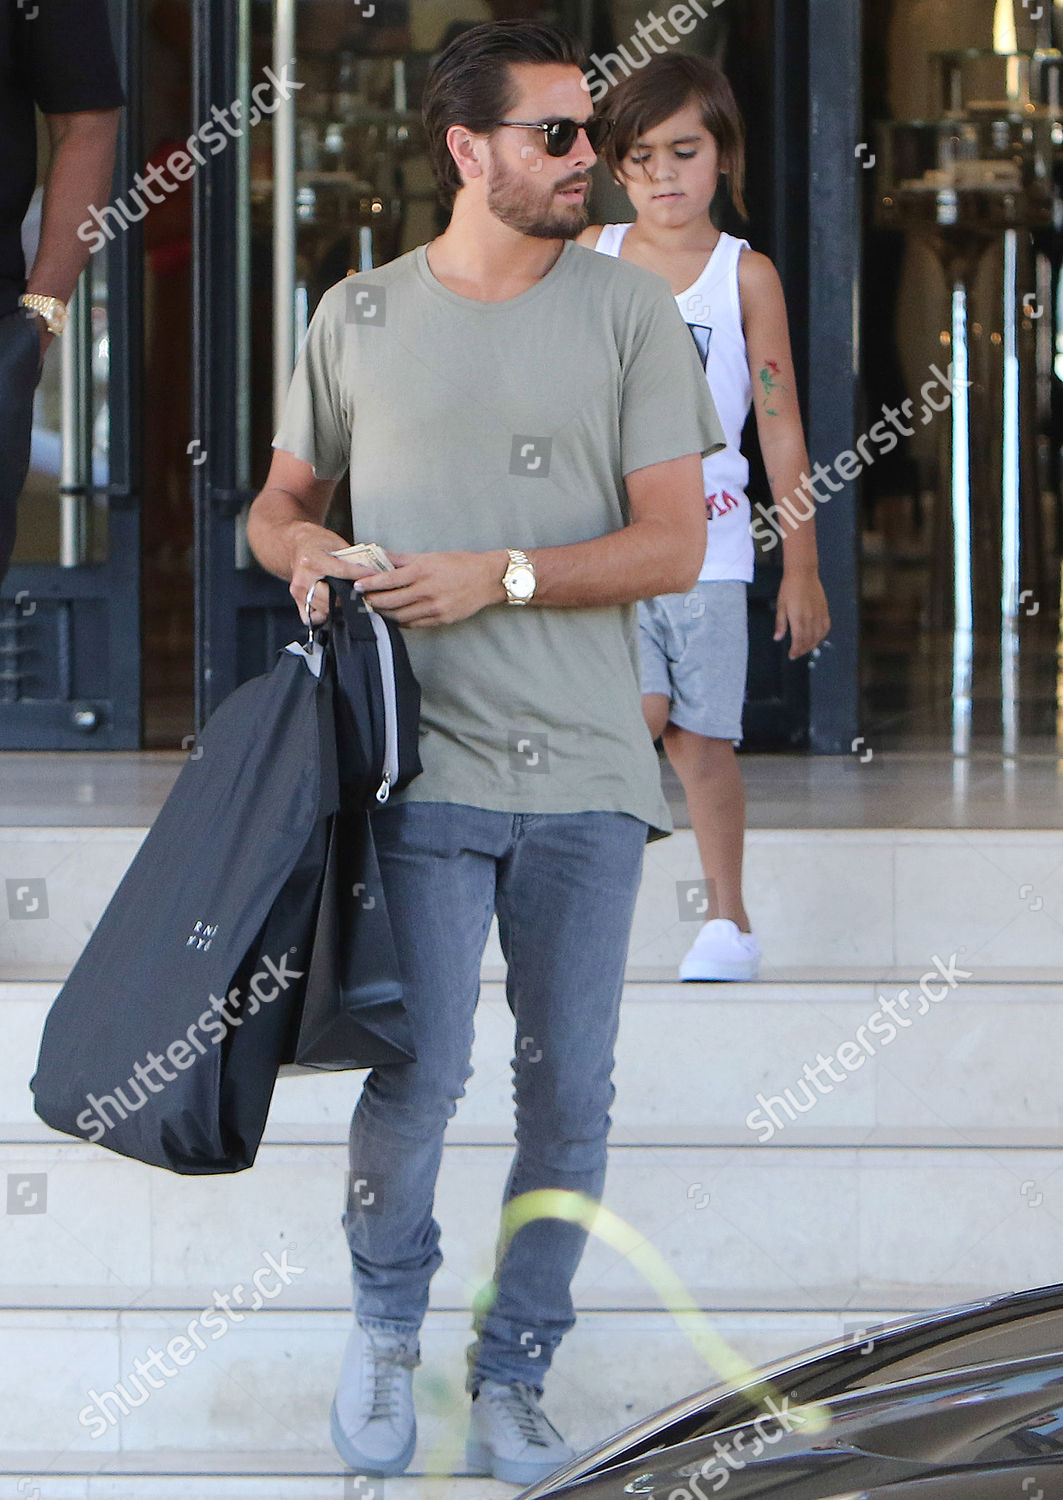 Stock photo of Scott Disick out and about, Los Angeles, USA - 20 Jun 2016